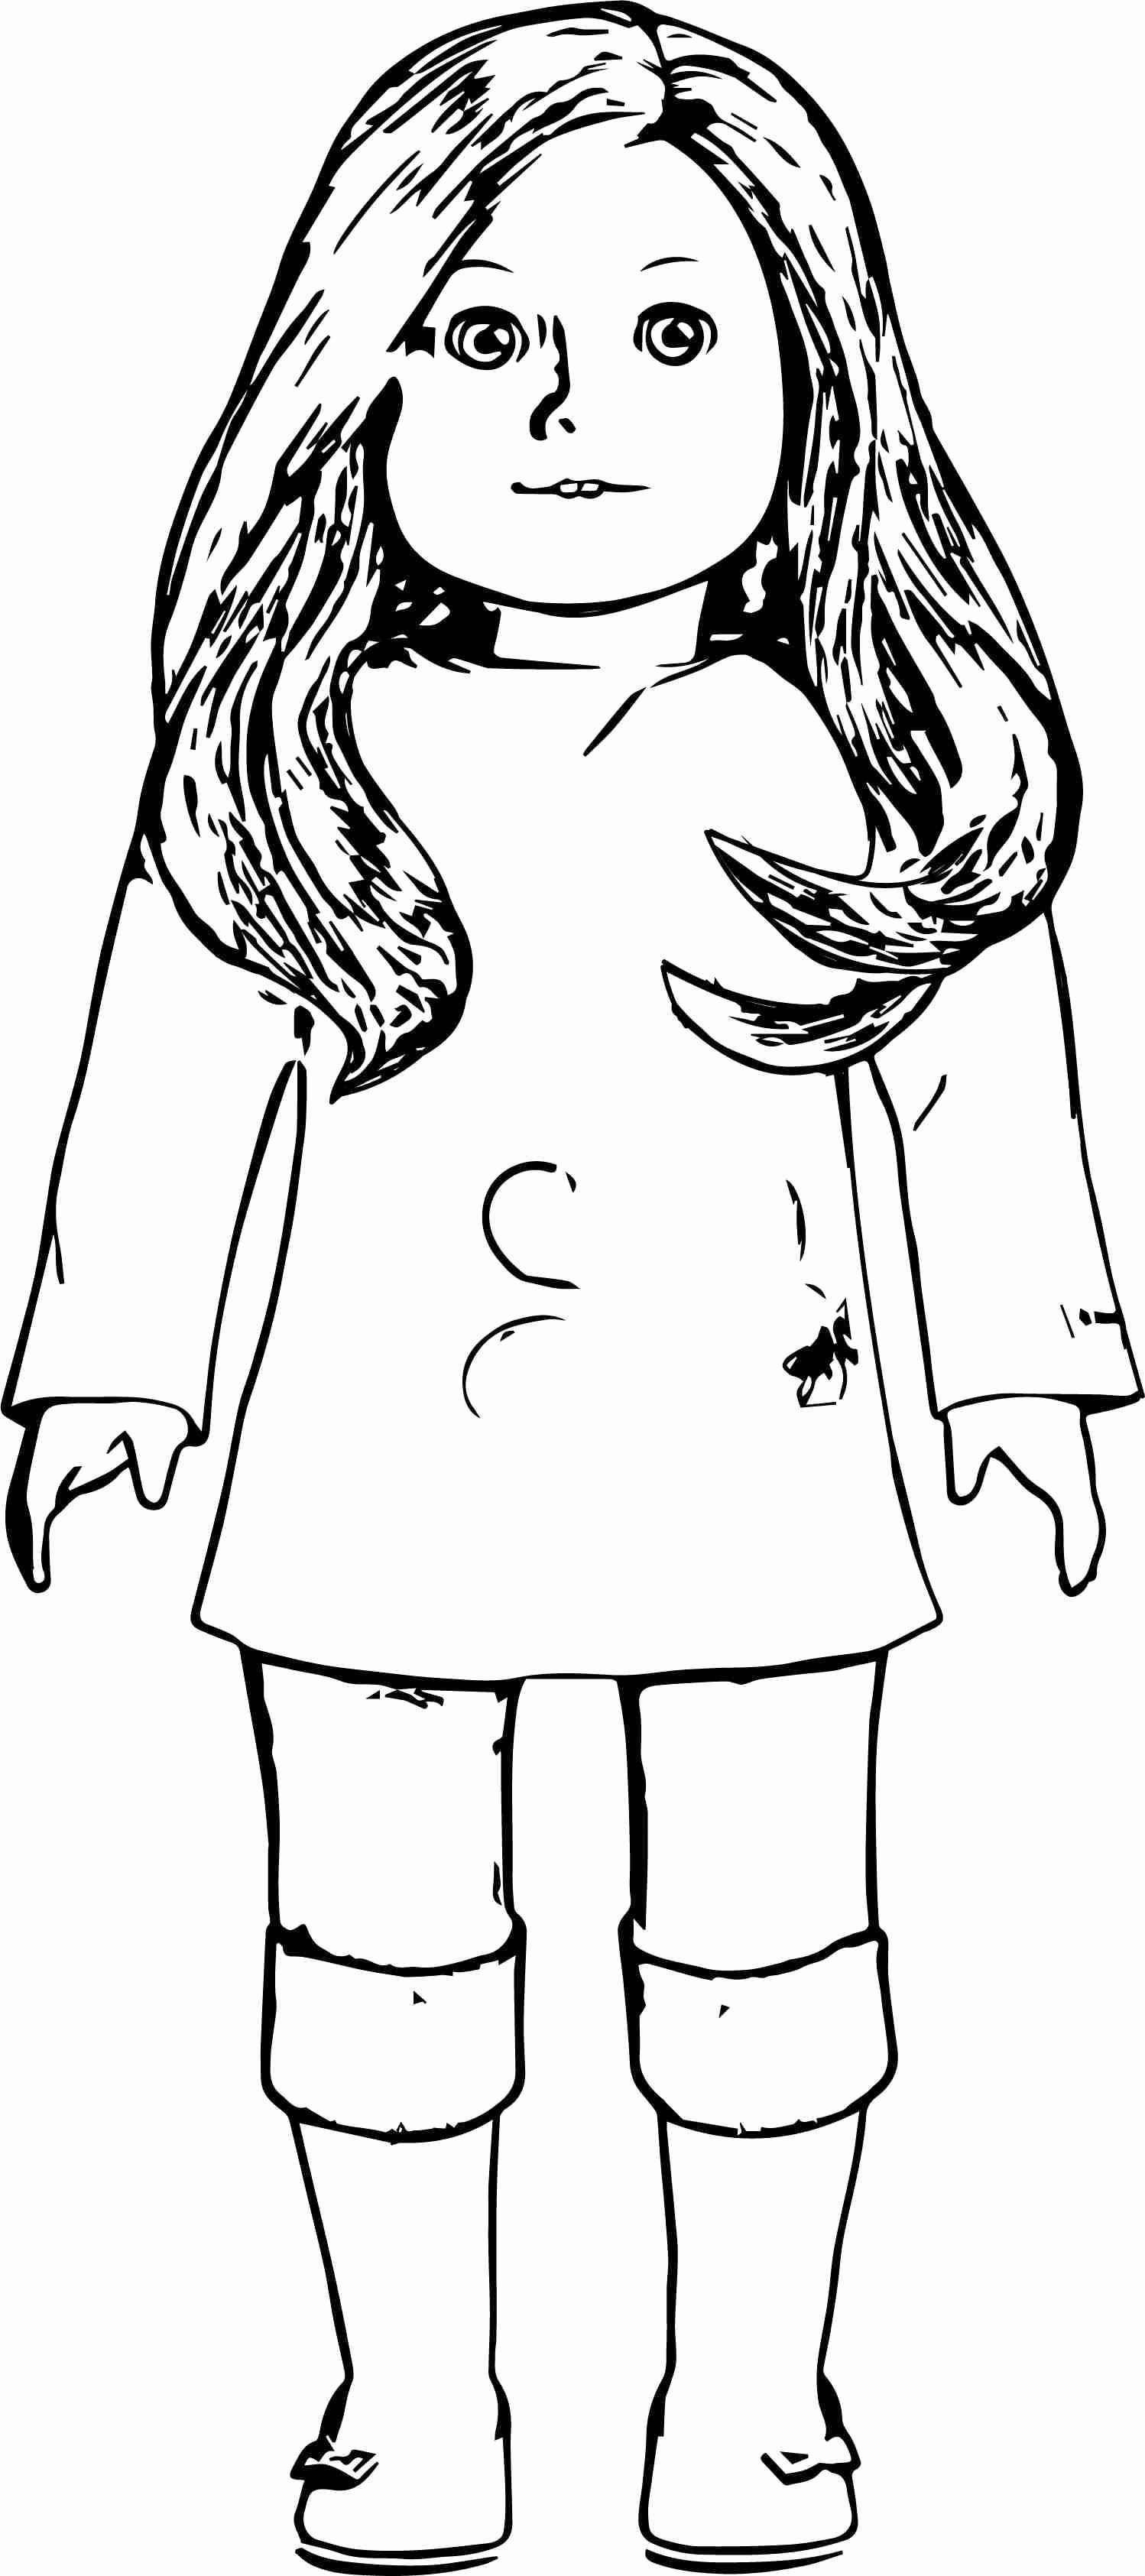 26 American Girl Coloring Pages Lea Download Printable Coloring Pages Coloring Pages For Girls American Girl Doll Pictures American Girl Printables